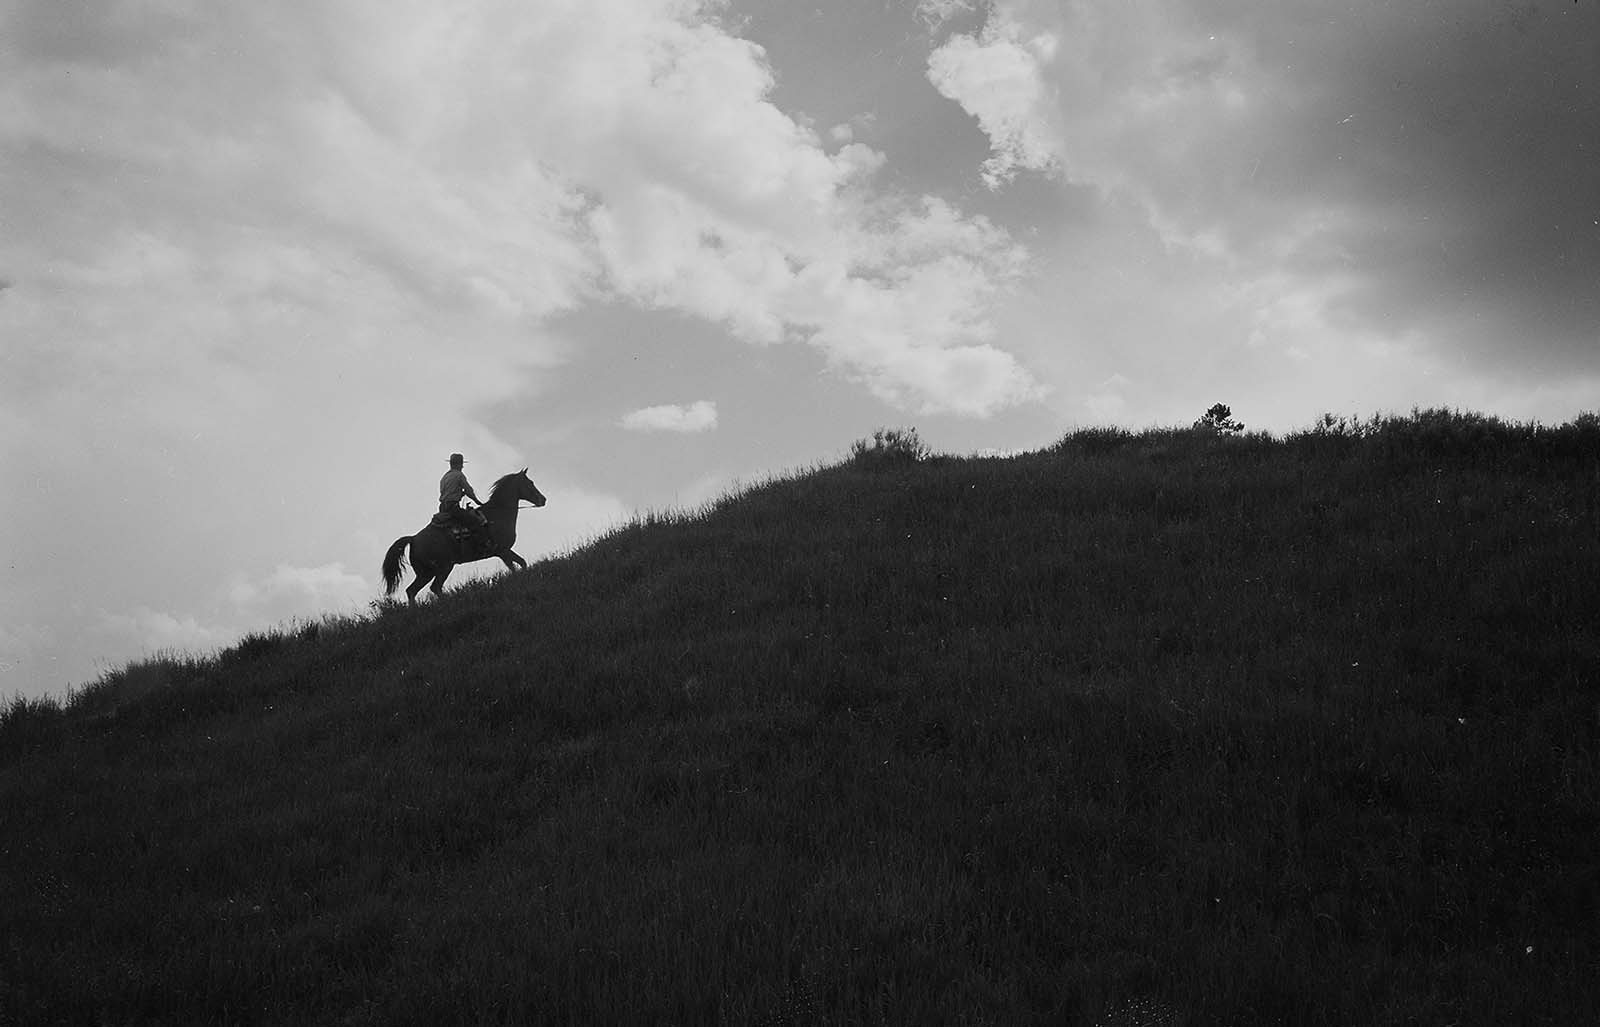 Ranger Bob Richard rides into the sunset at the end of the day. Photo taken southwest of Fishing Bridge, Yellowstone National Park, 1960.